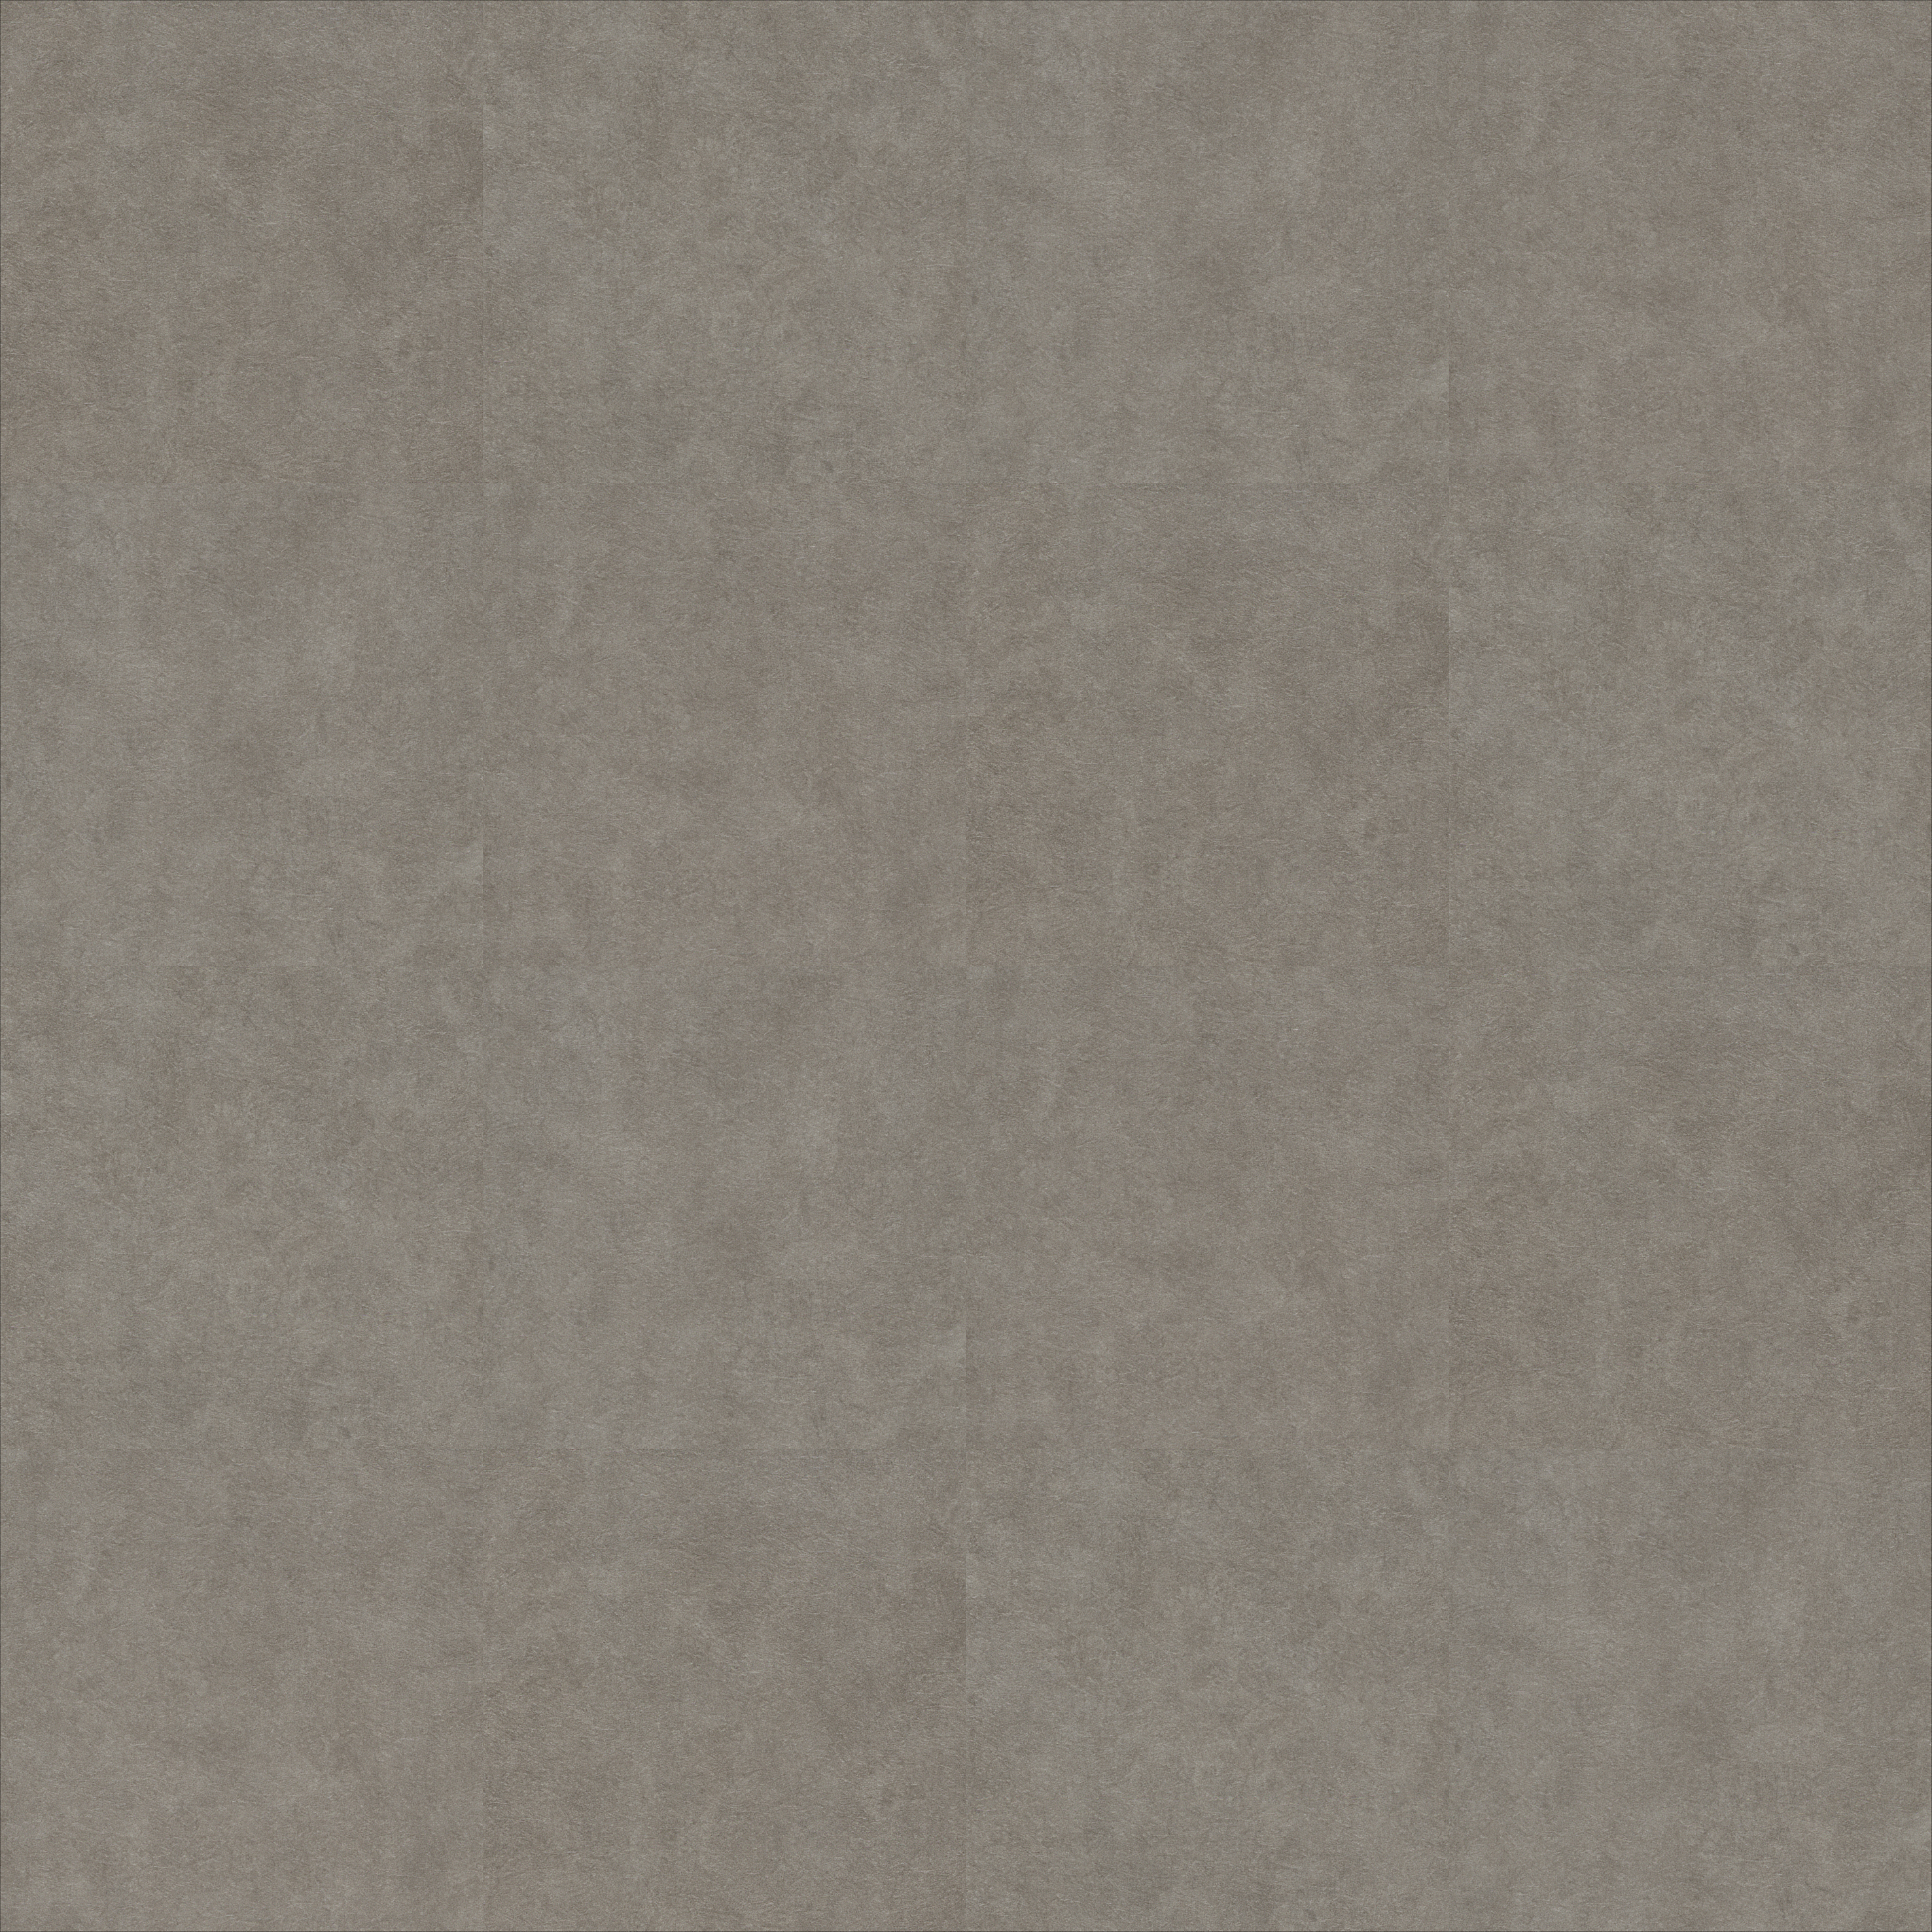 Allura flex stone loose lay tiles forbo flooring systems about allura flex dailygadgetfo Images